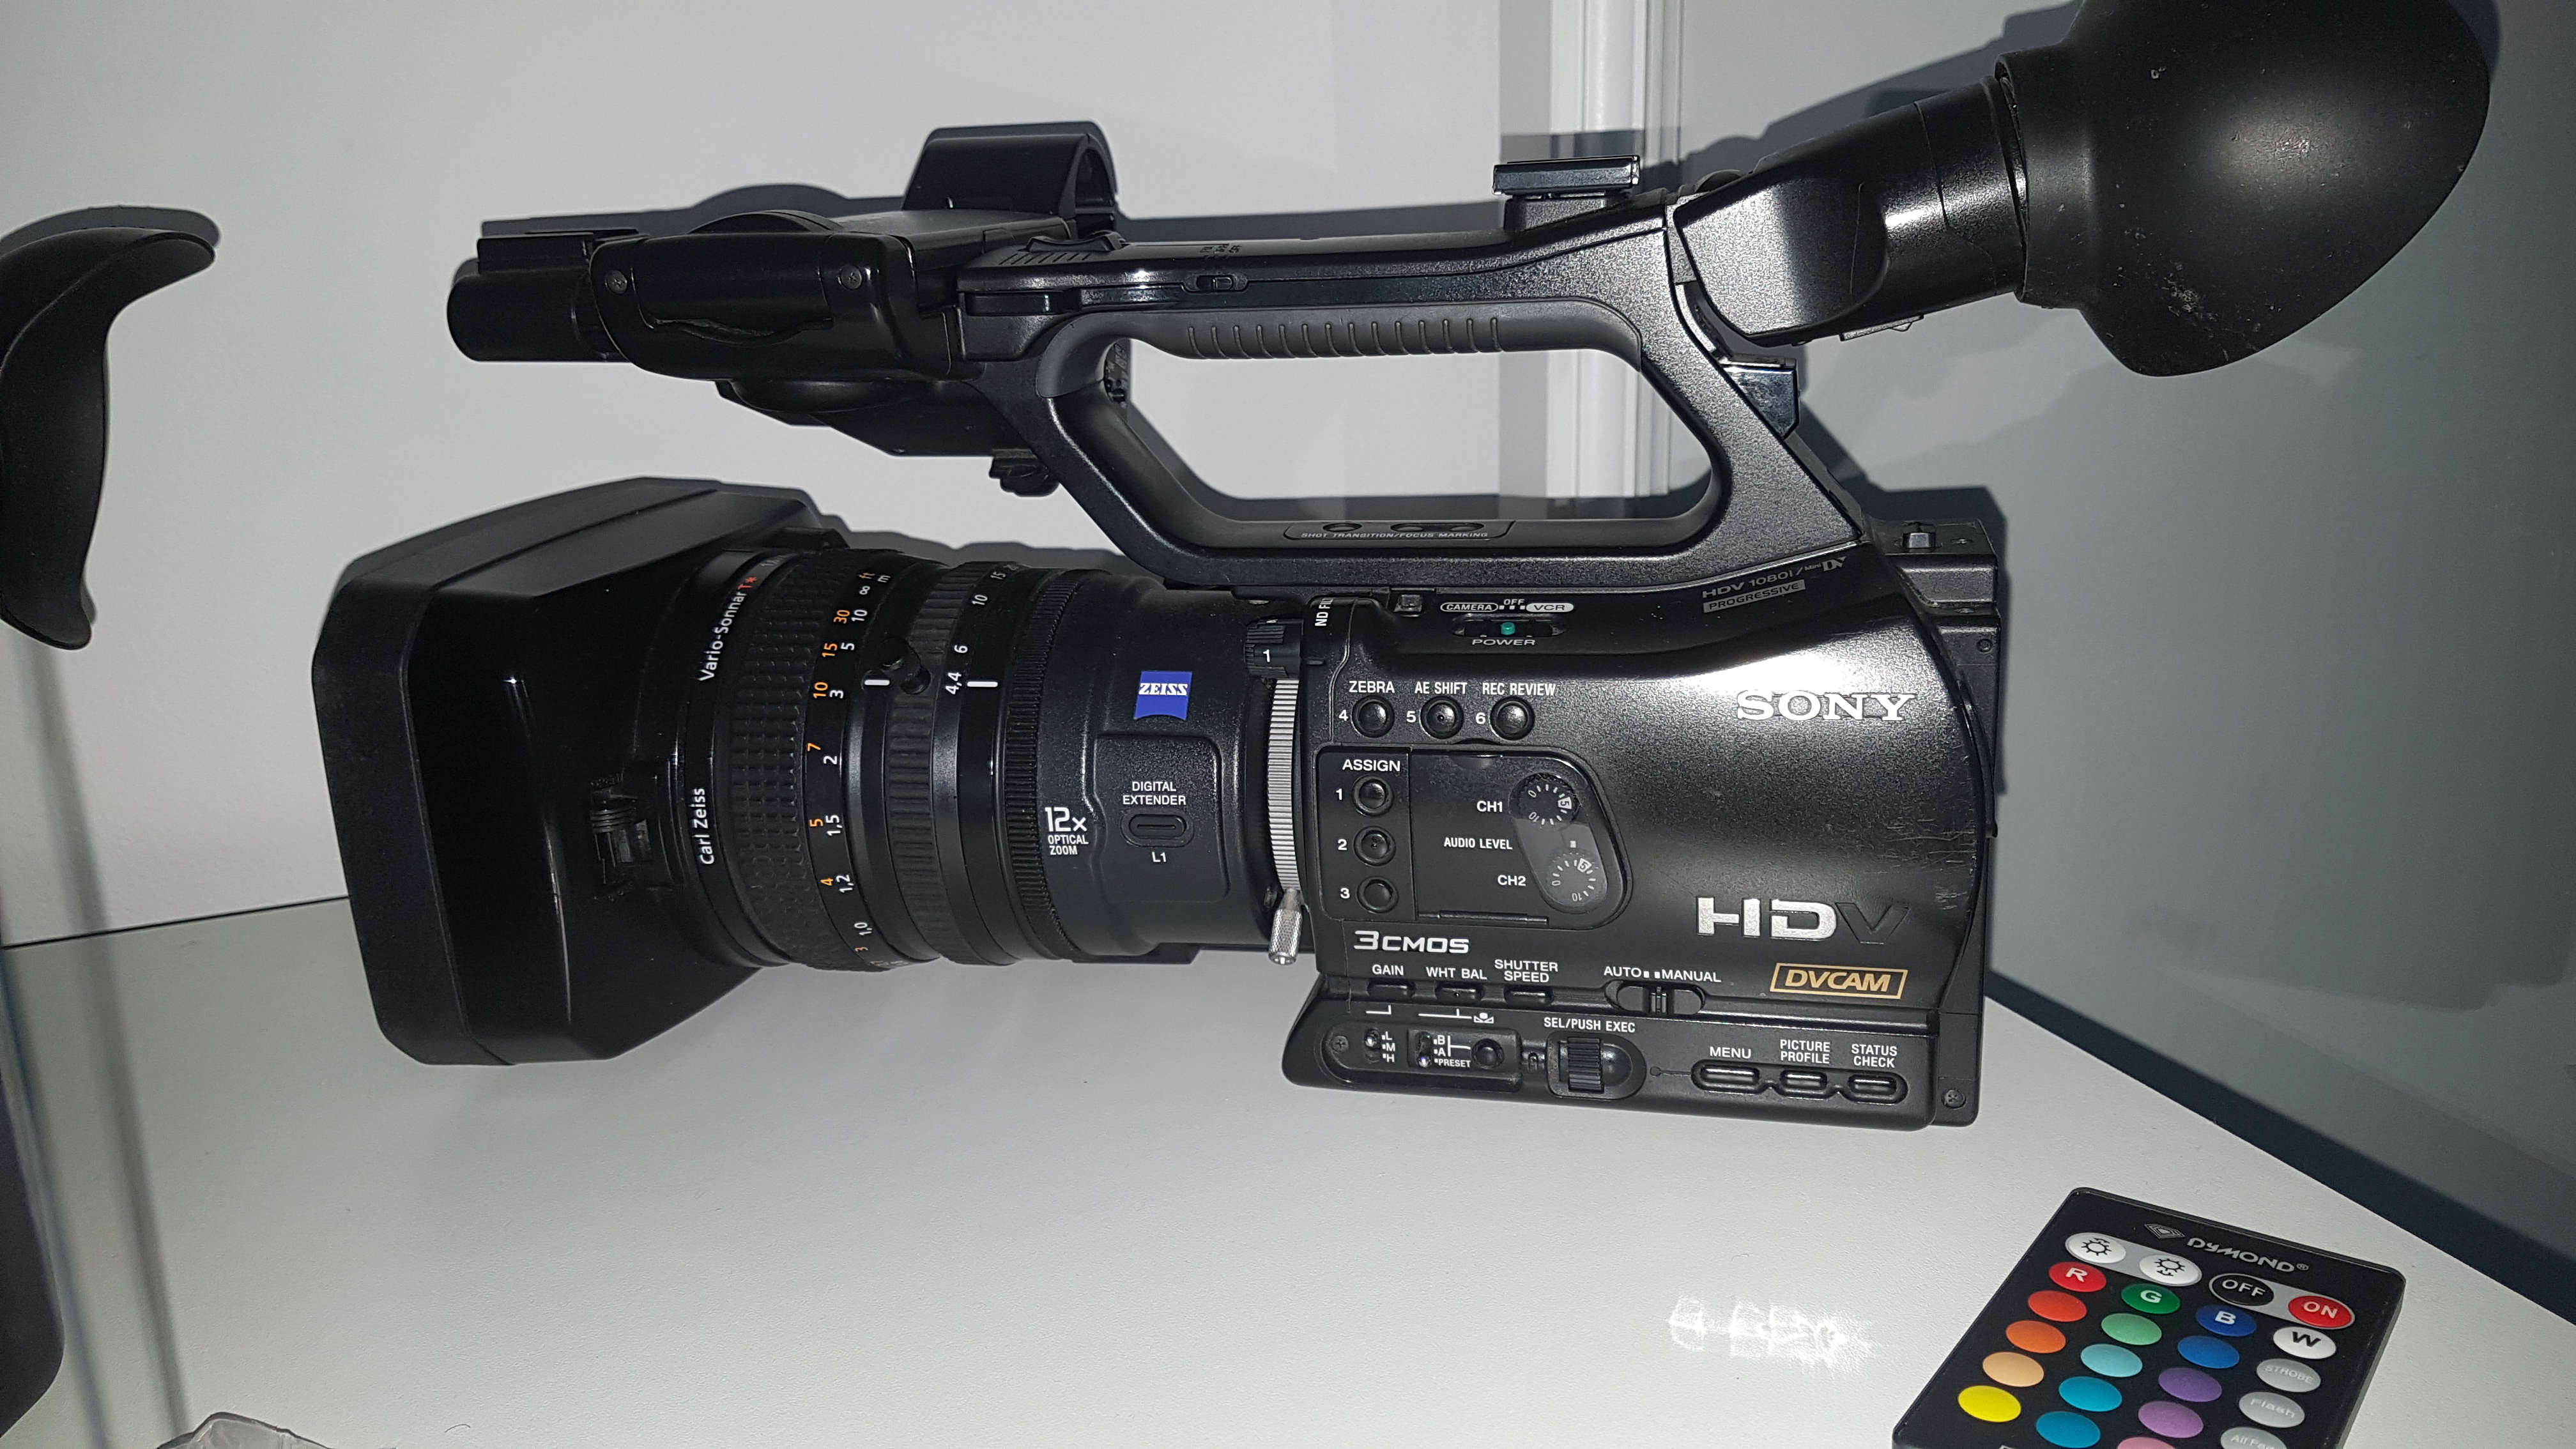 Camera sony hvr z7e with hdmi out and zeis lens SONY HVR Z7E - Image #1